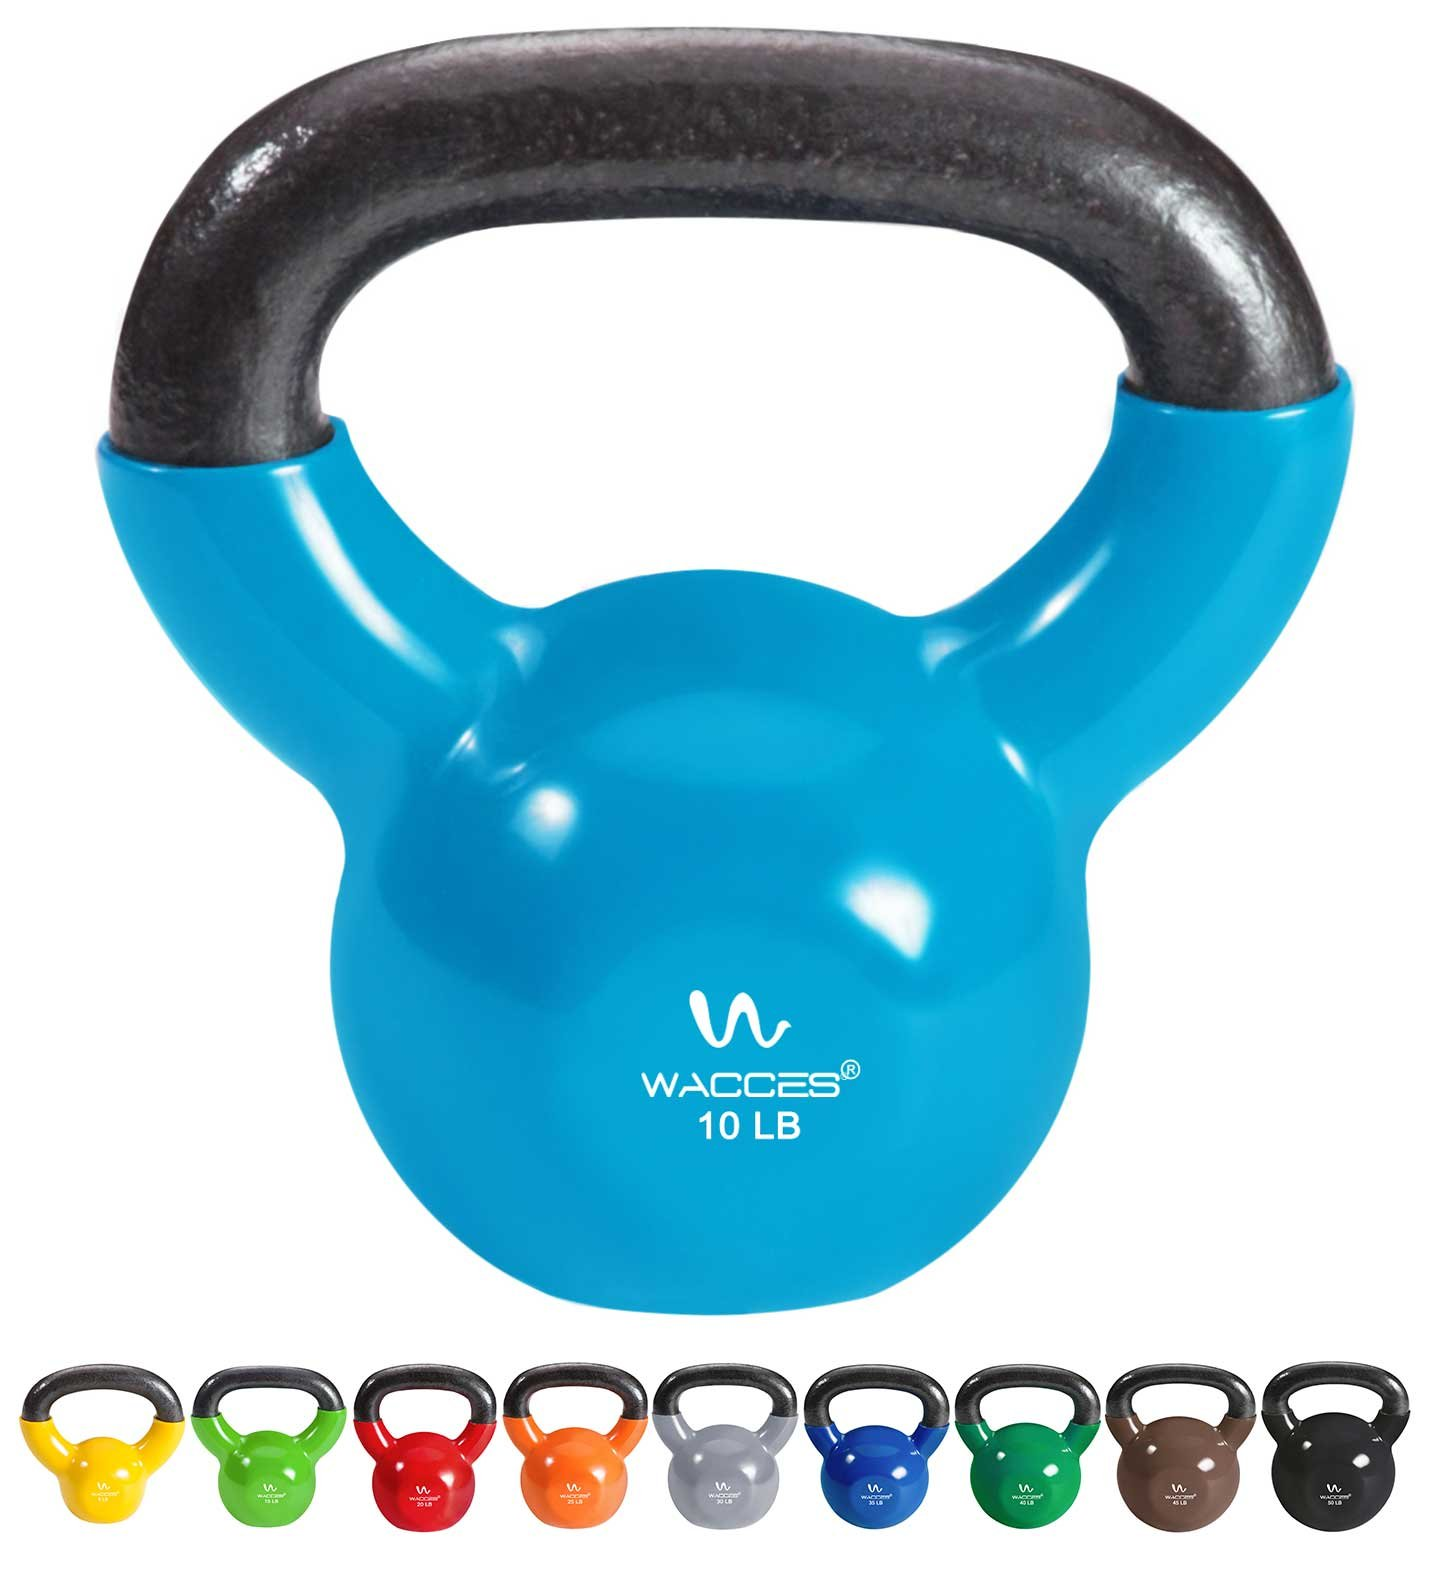 Wacces Single Vinyl Dipped Kettlebell for Croos Training, Home Exercise, Workout 10LB